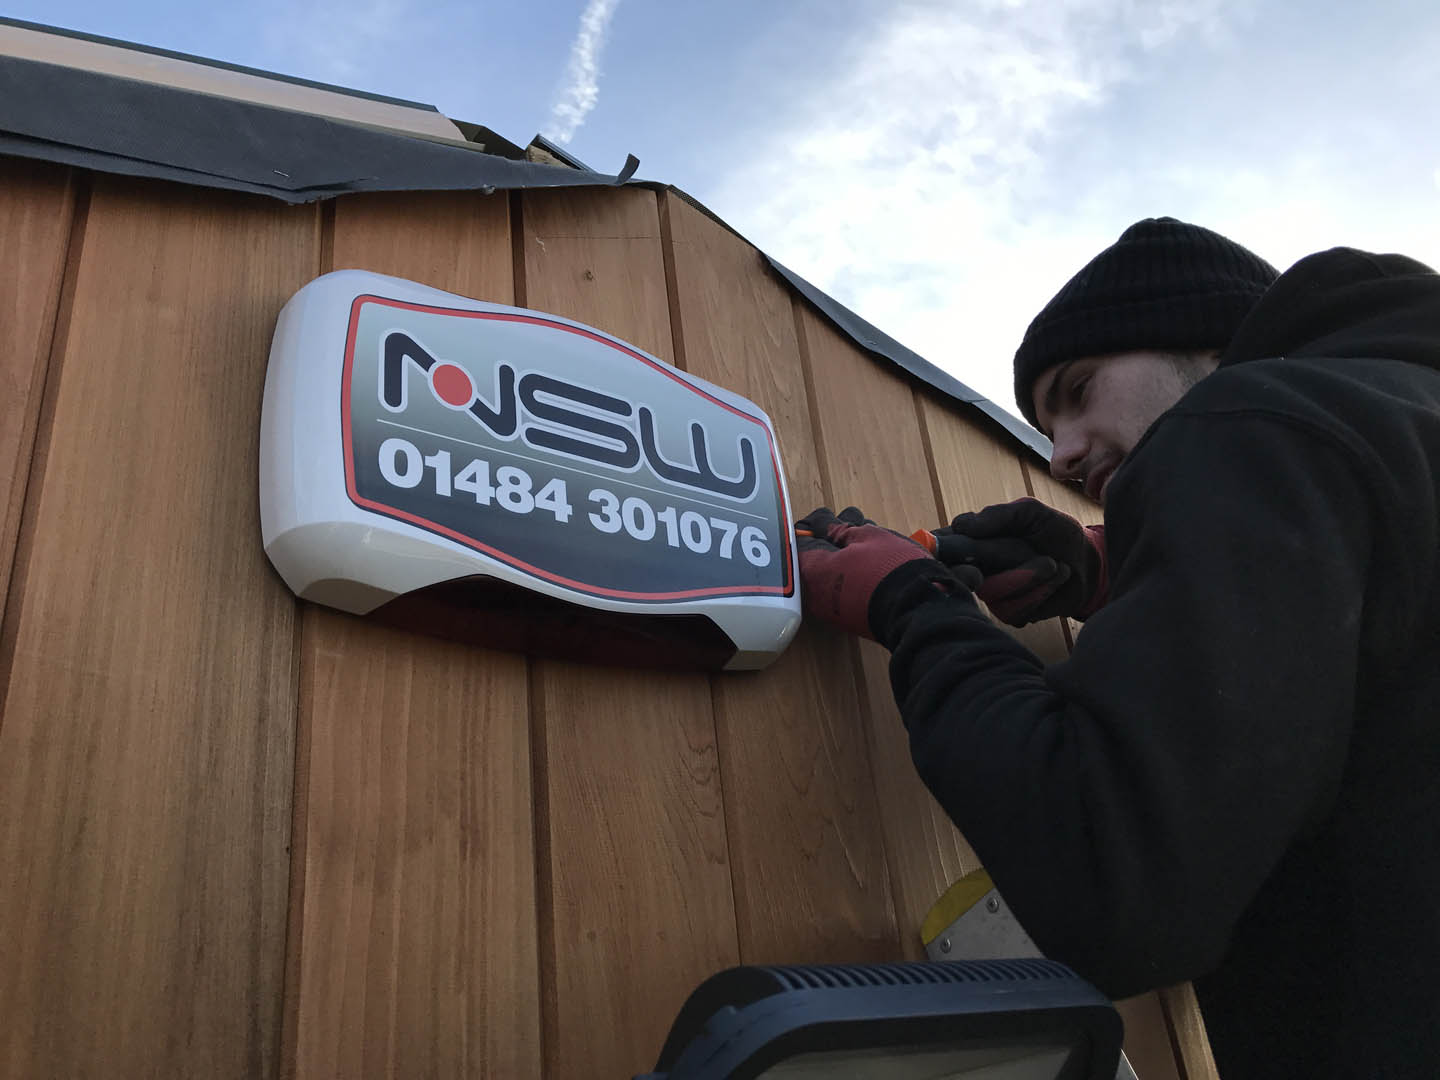 Burglar Alarm Installation West Yorkshire